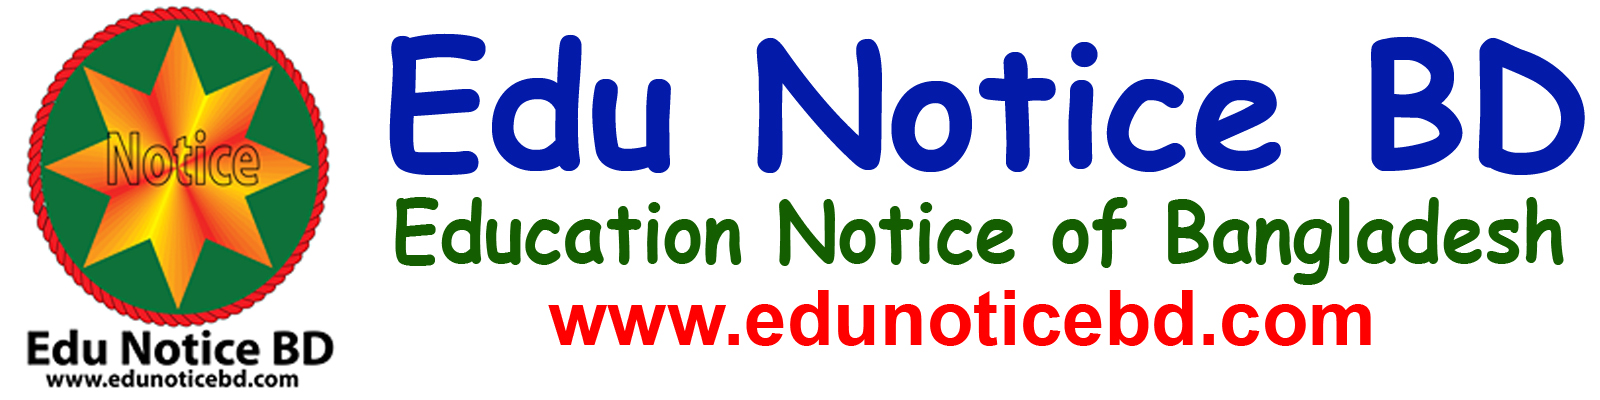 Edu Notice BD